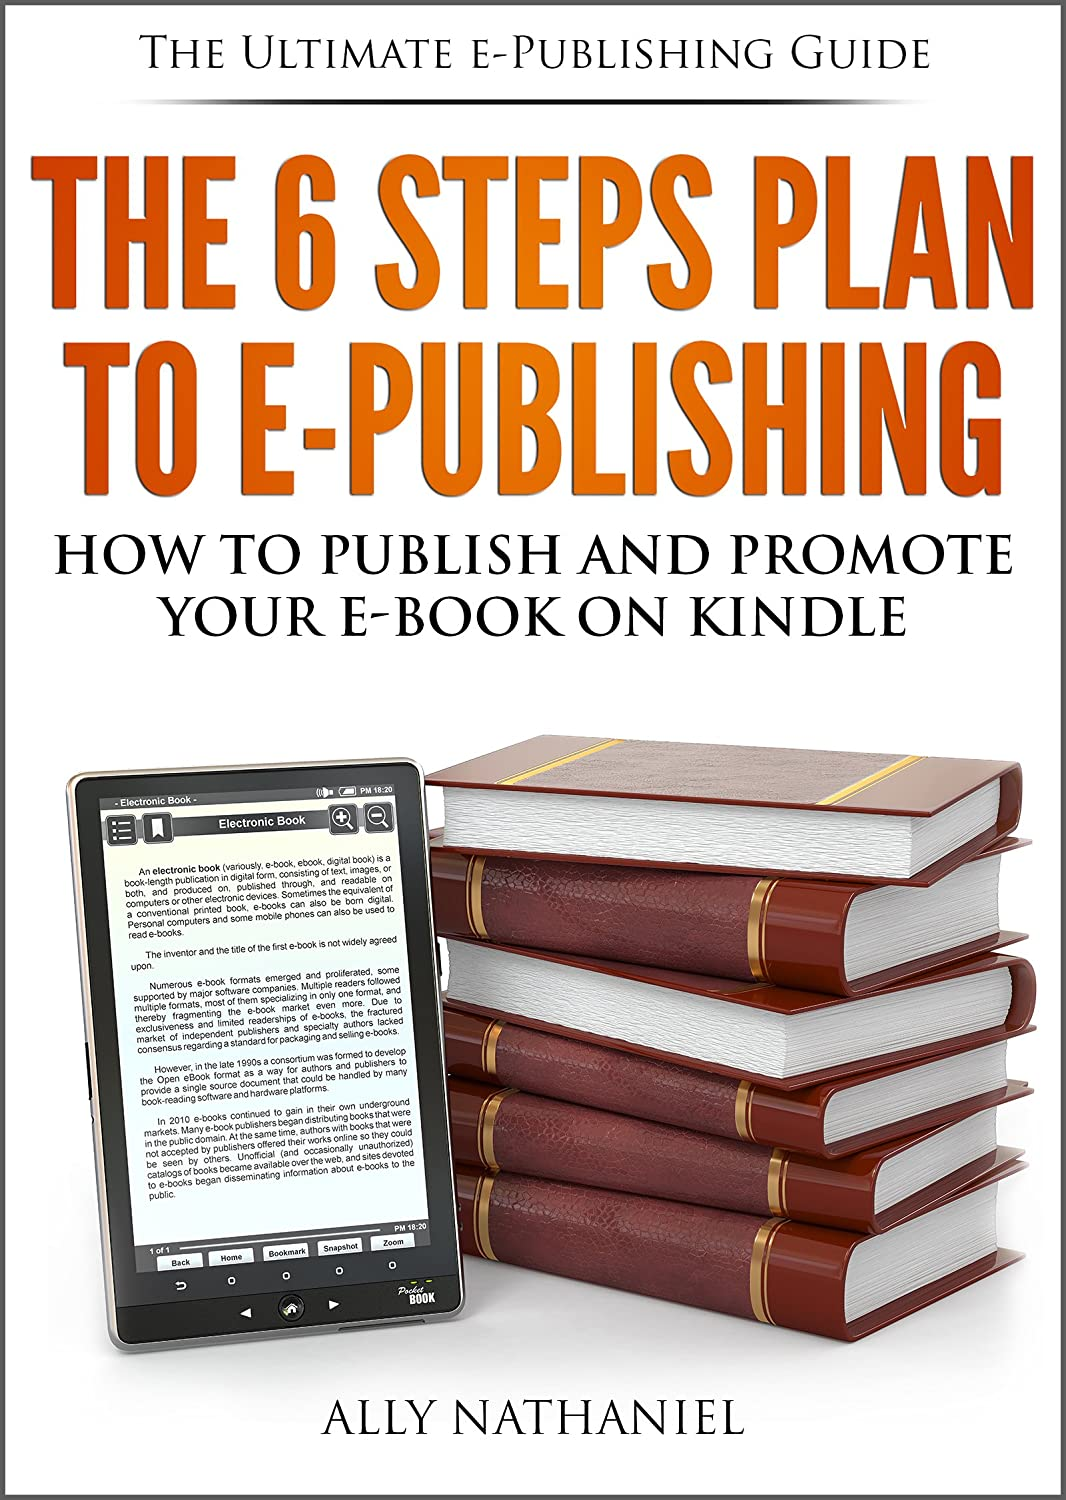 The 6 Steps Plan to e-Publishing: How To Publish in Kindle Format... by Ally Nathaniel